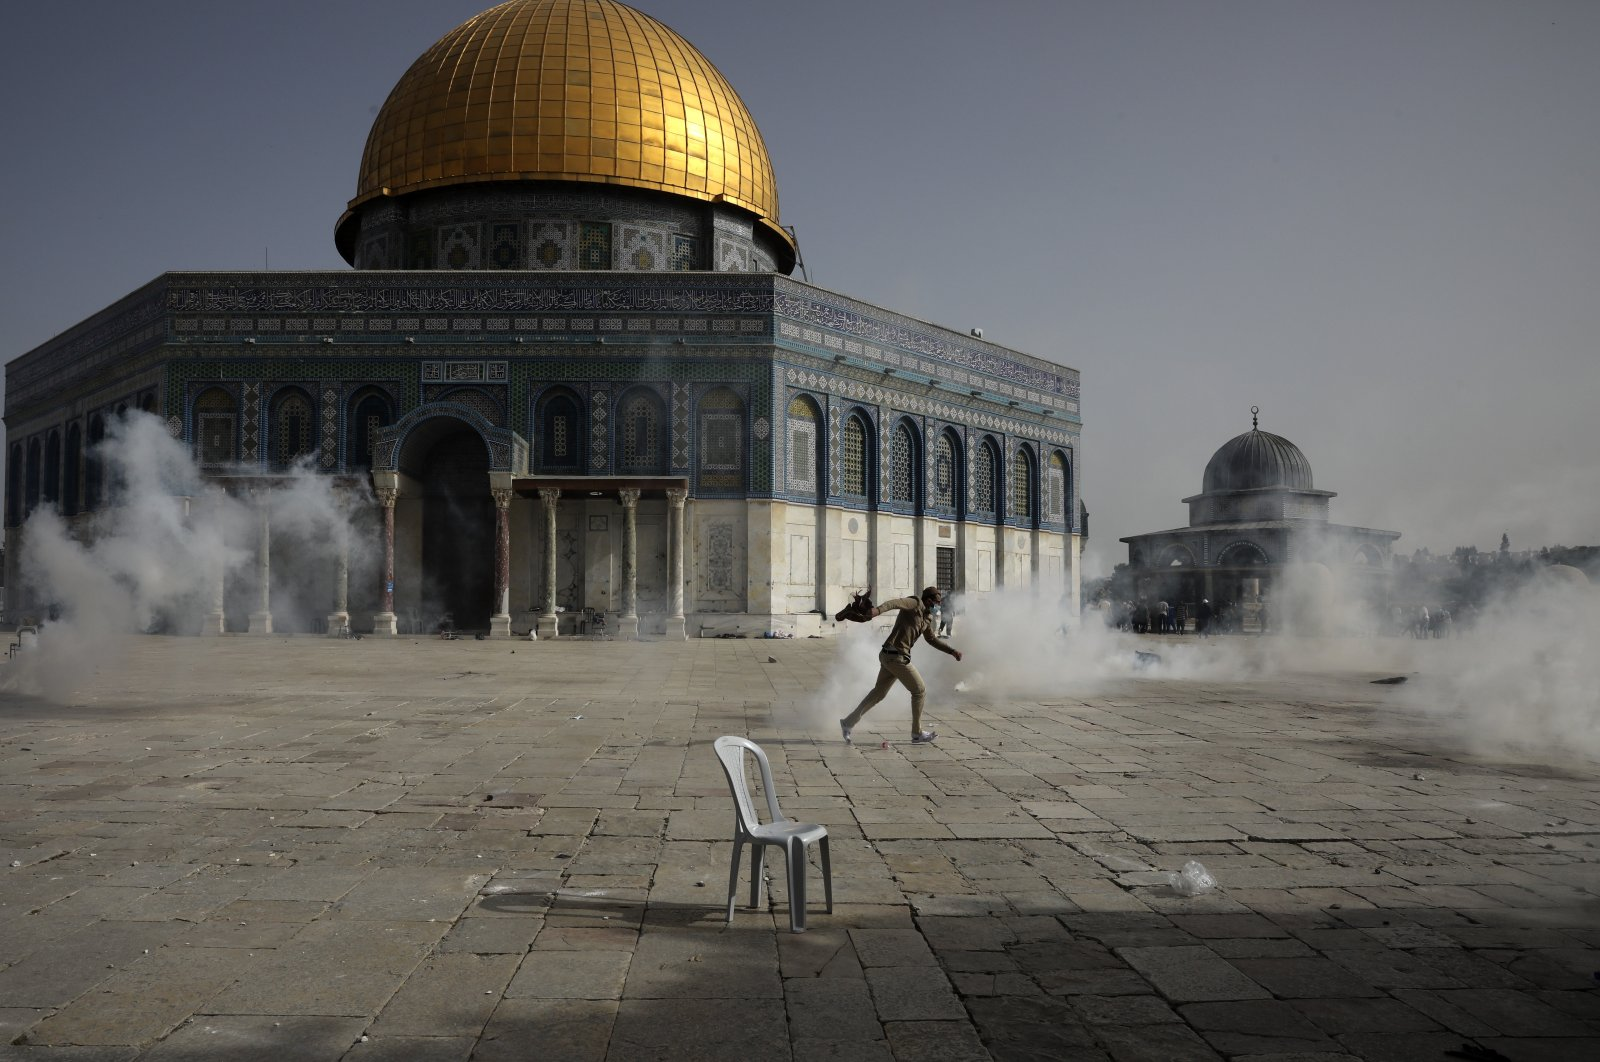 A Palestinian man runs away as Israeli police fire tear gas at the Al-Aqsa Mosque compound, East Jerusalem, occupied Palestine, May 10, 2021. (AP Photo)